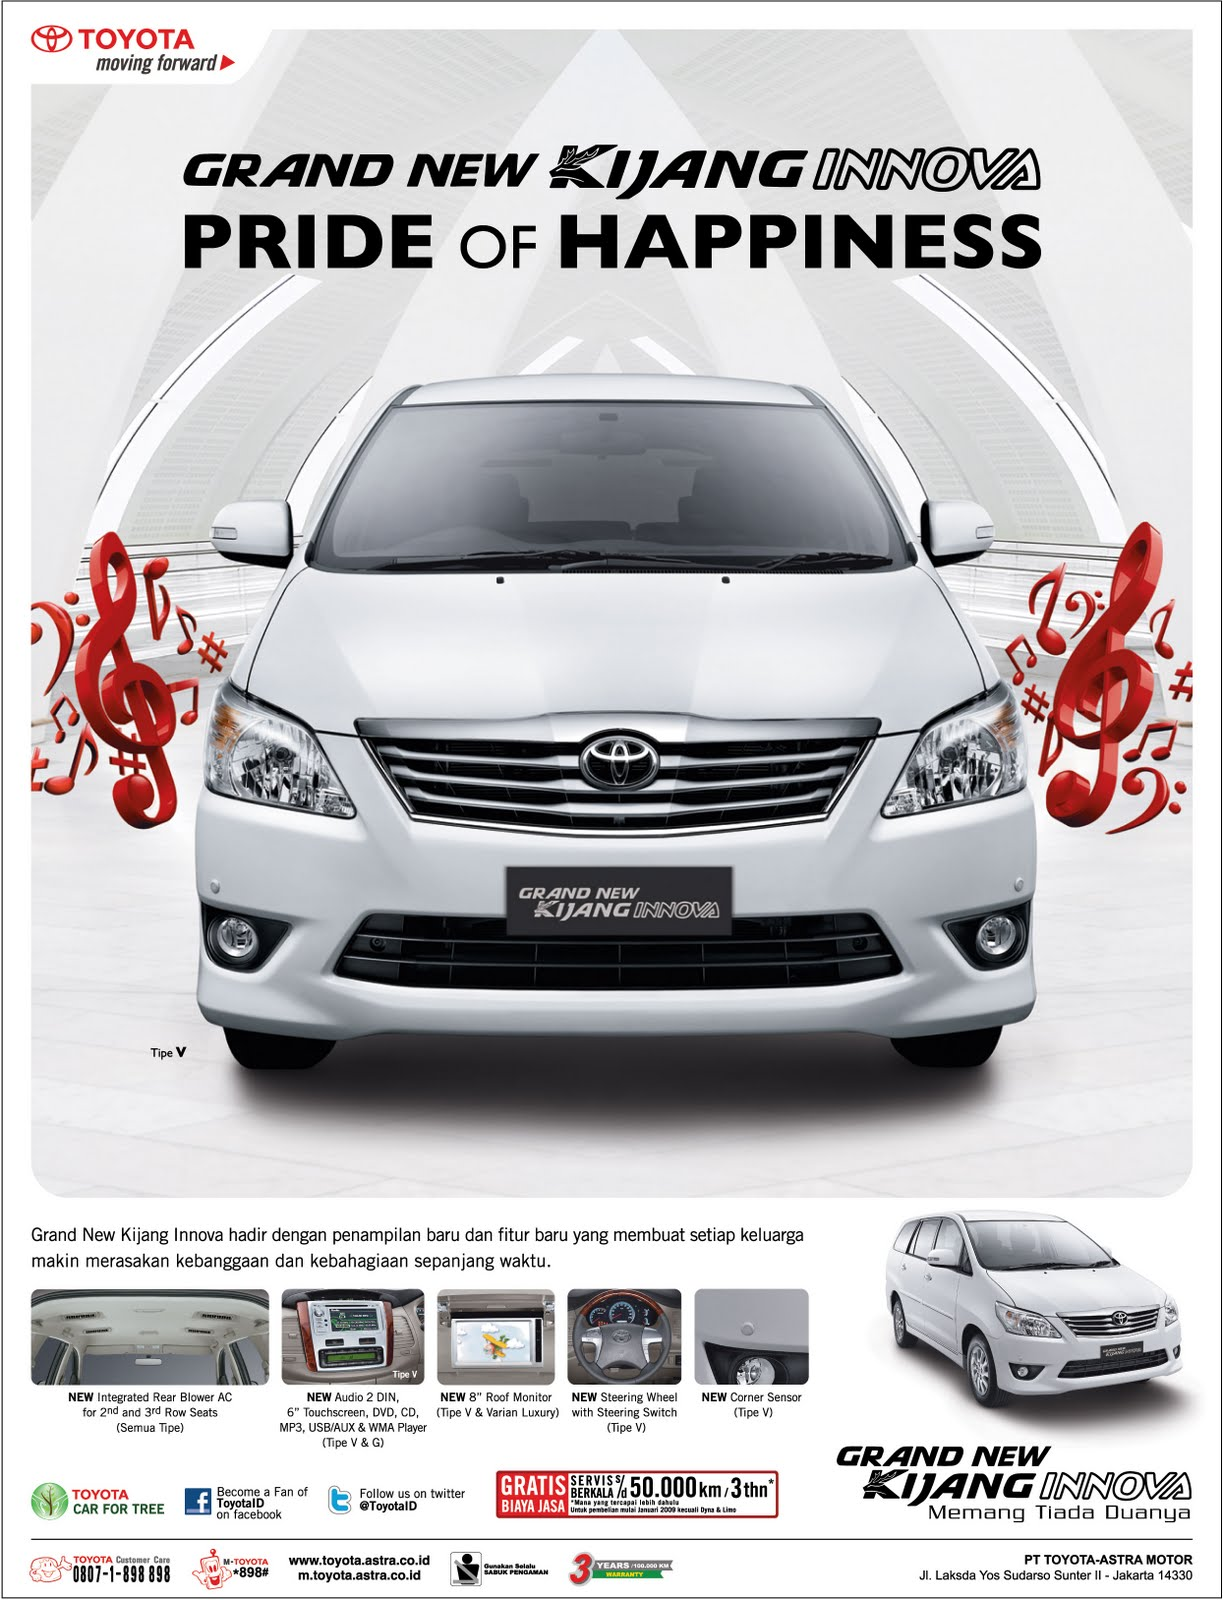 Grand New Kijang Innova V 2014 Harga Oli Avanza S Banu Ardi Ask Me For Fine Tuning Your Brand Campaign